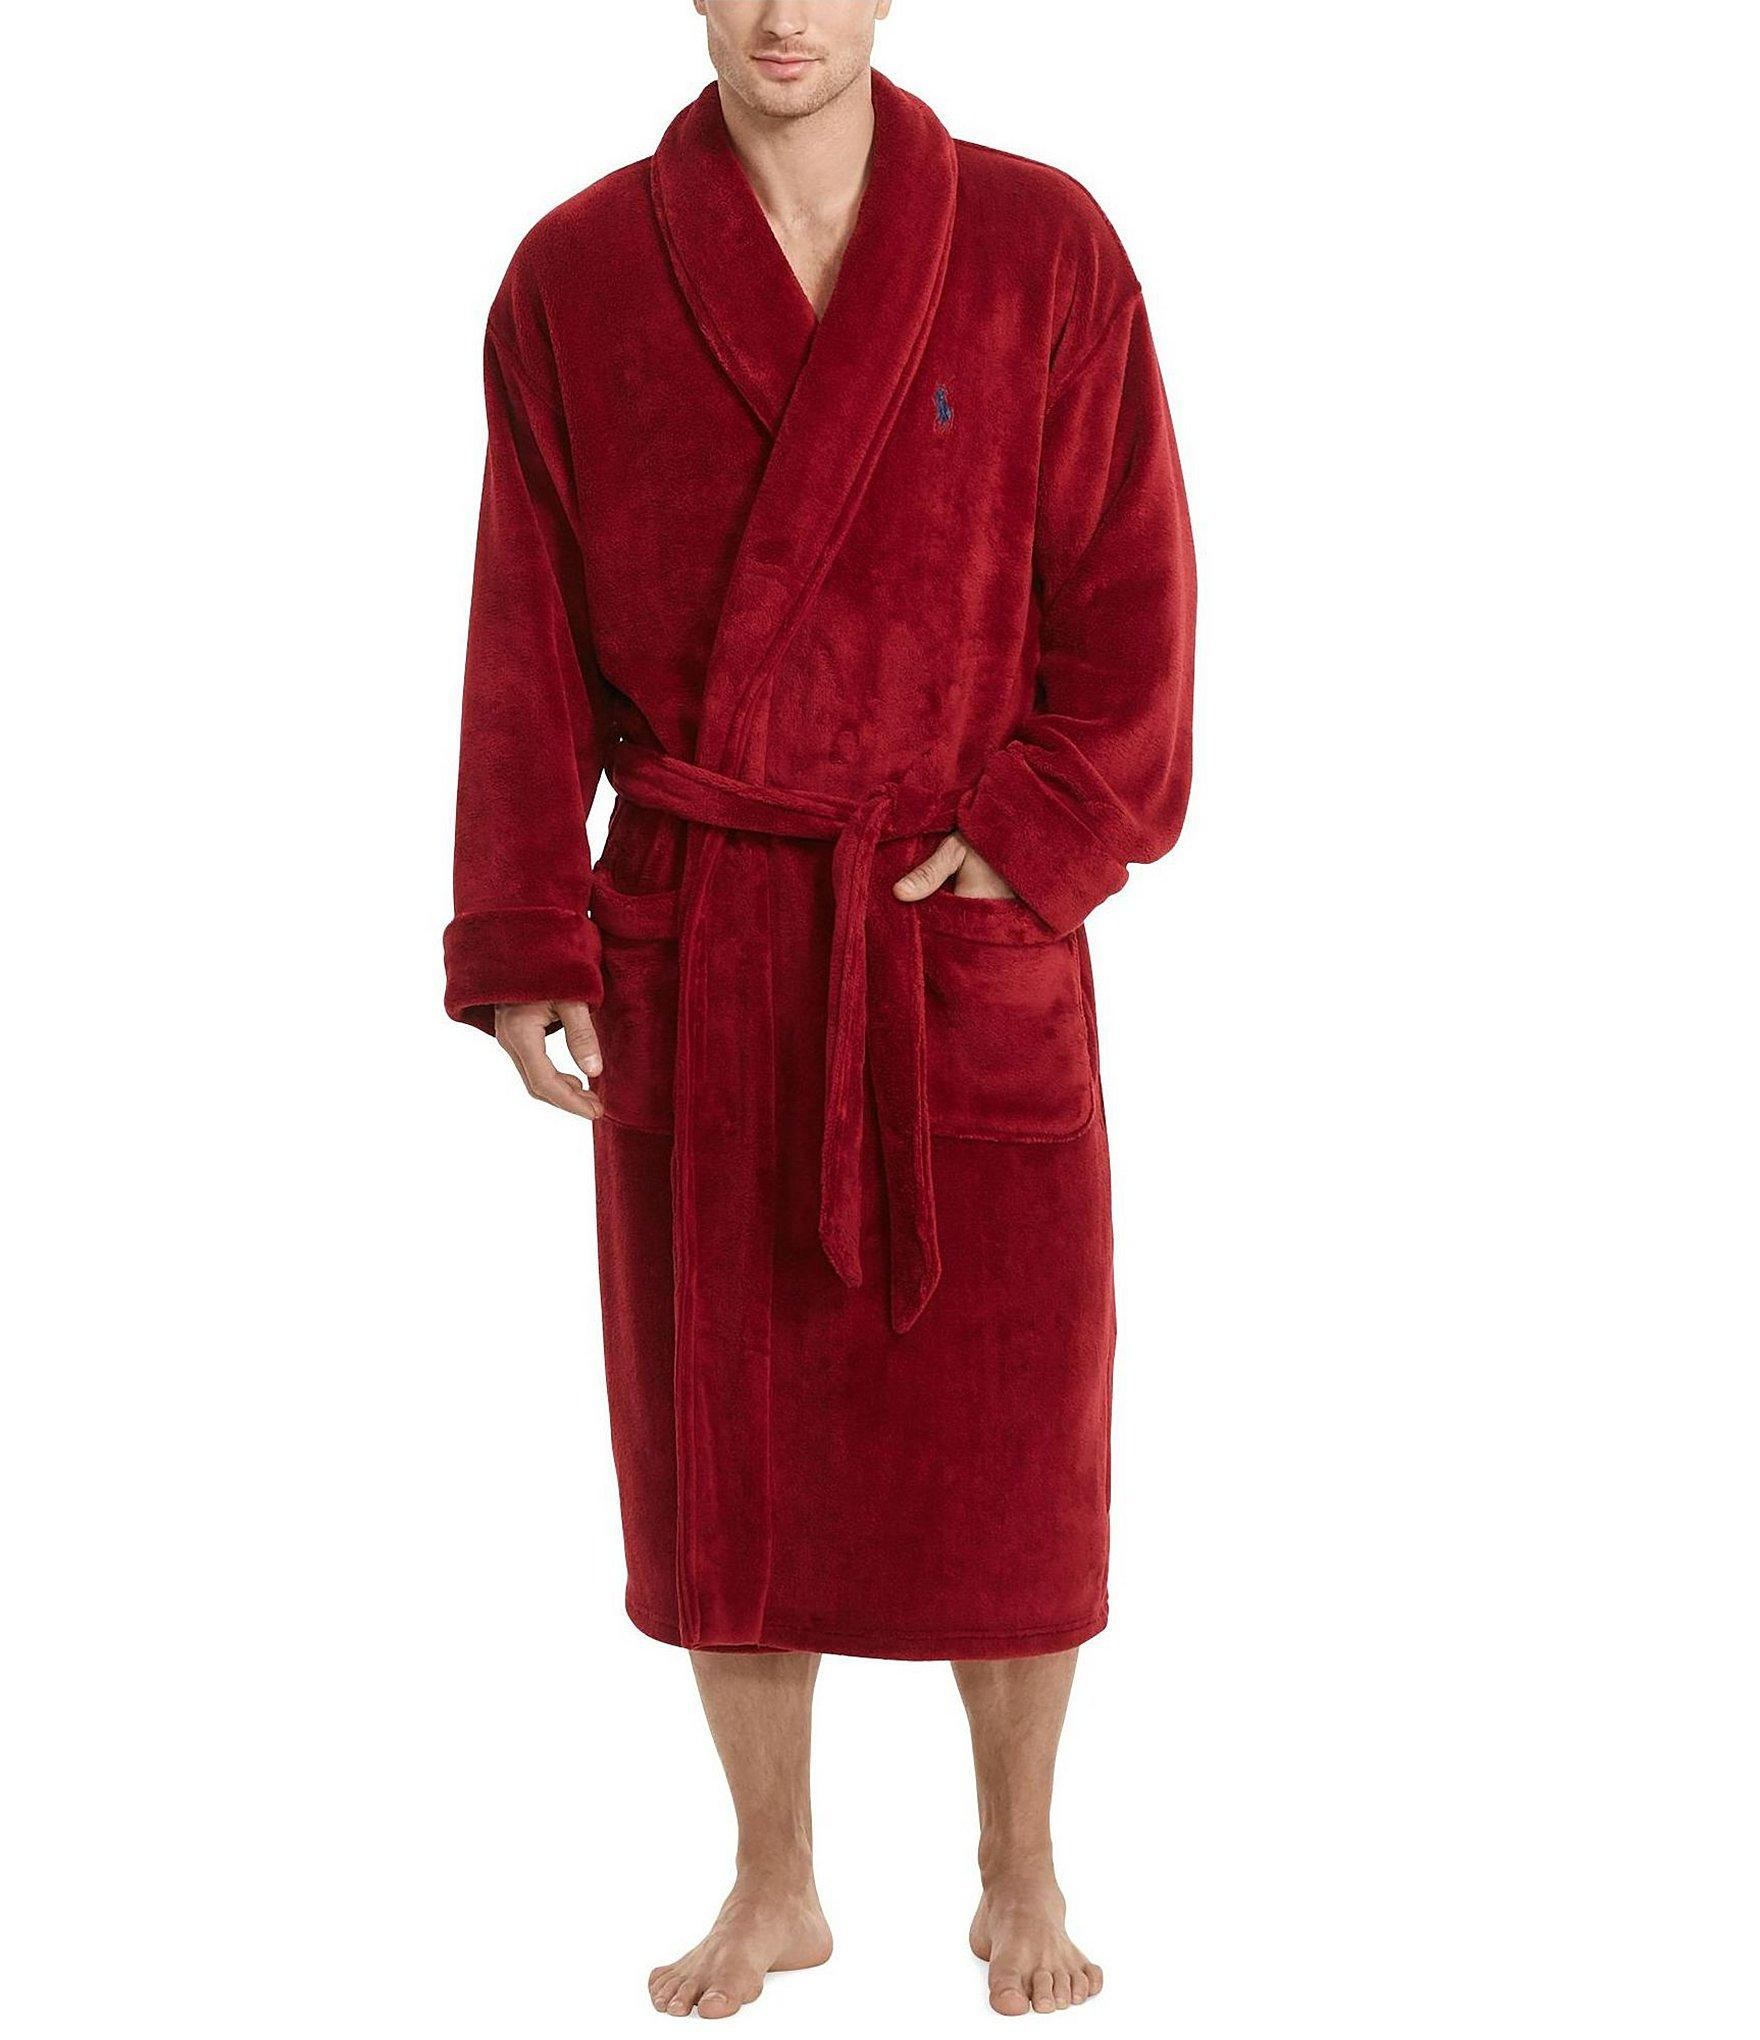 polo ralph lauren microfleece robe for men lyst. Black Bedroom Furniture Sets. Home Design Ideas